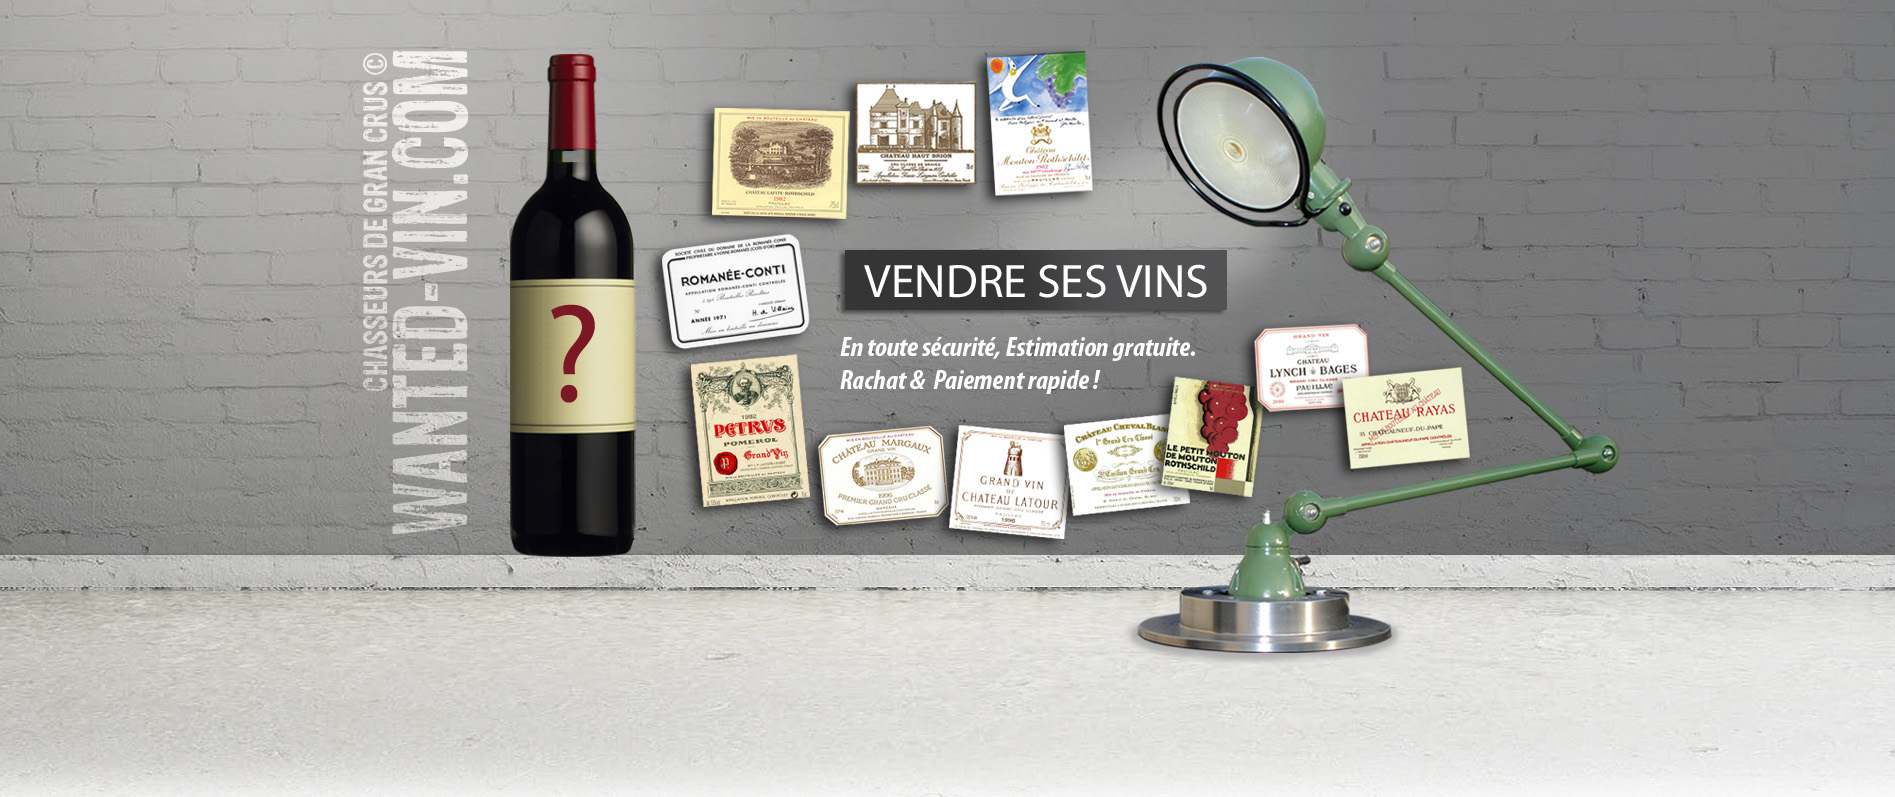 vendre des vins rachat bouteilles estimation vin gratuite wanted vin grands crus. Black Bedroom Furniture Sets. Home Design Ideas